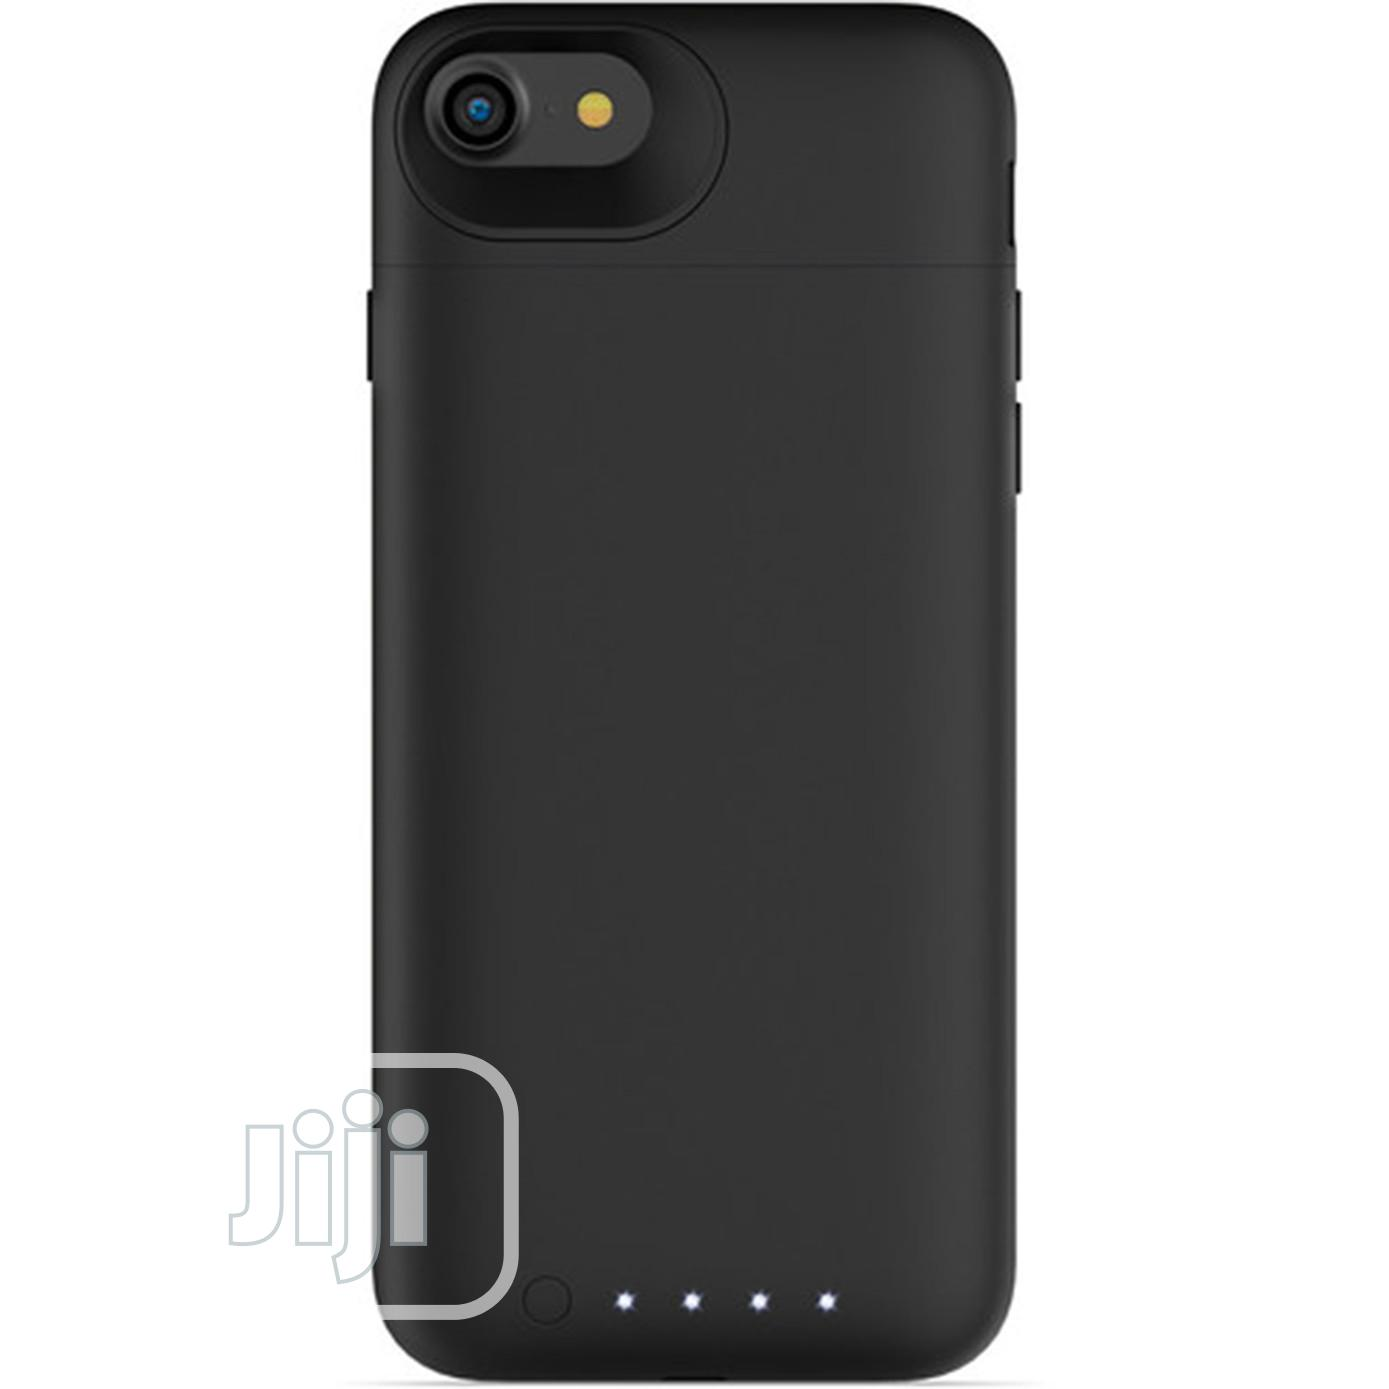 Mophie Iphone 7 8 Juice Pack Air Black In Ikeja Accessories For Mobile Phones Tablets Olusola Adeniyi Jiji Ng Mophie claims the iphone 7 case should give you a total 27 hours of battery, and the plus variant should give you 33 hours. mophie iphone 7 8 juice pack air black